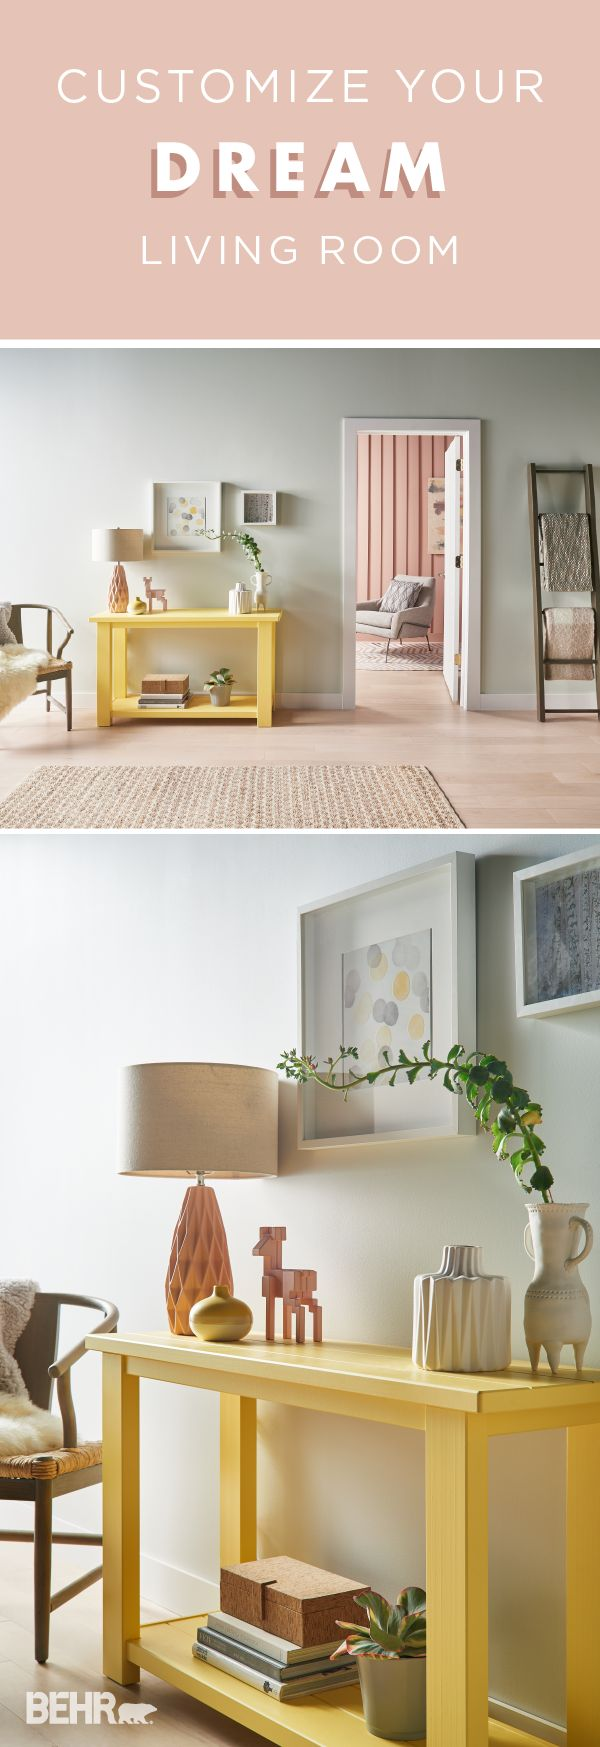 17 Best Images About New Home Inspiration On Pinterest